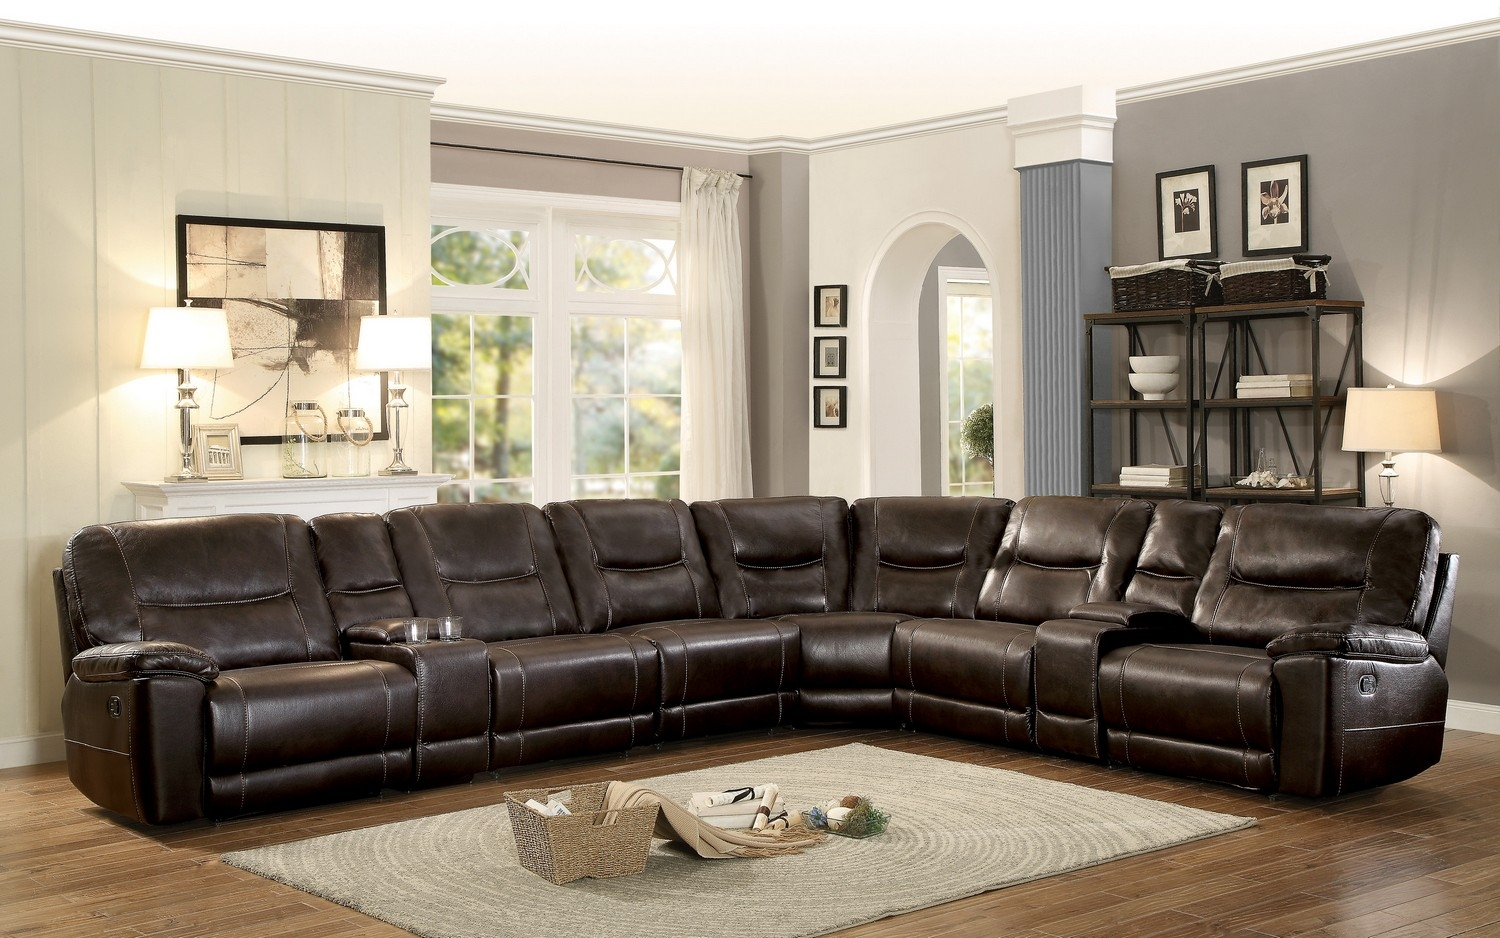 Sofas Center Popular Reclining Sectional Sofa With Sleeper On Pertaining To Albany Industries Sectional Sofa (Image 14 of 15)